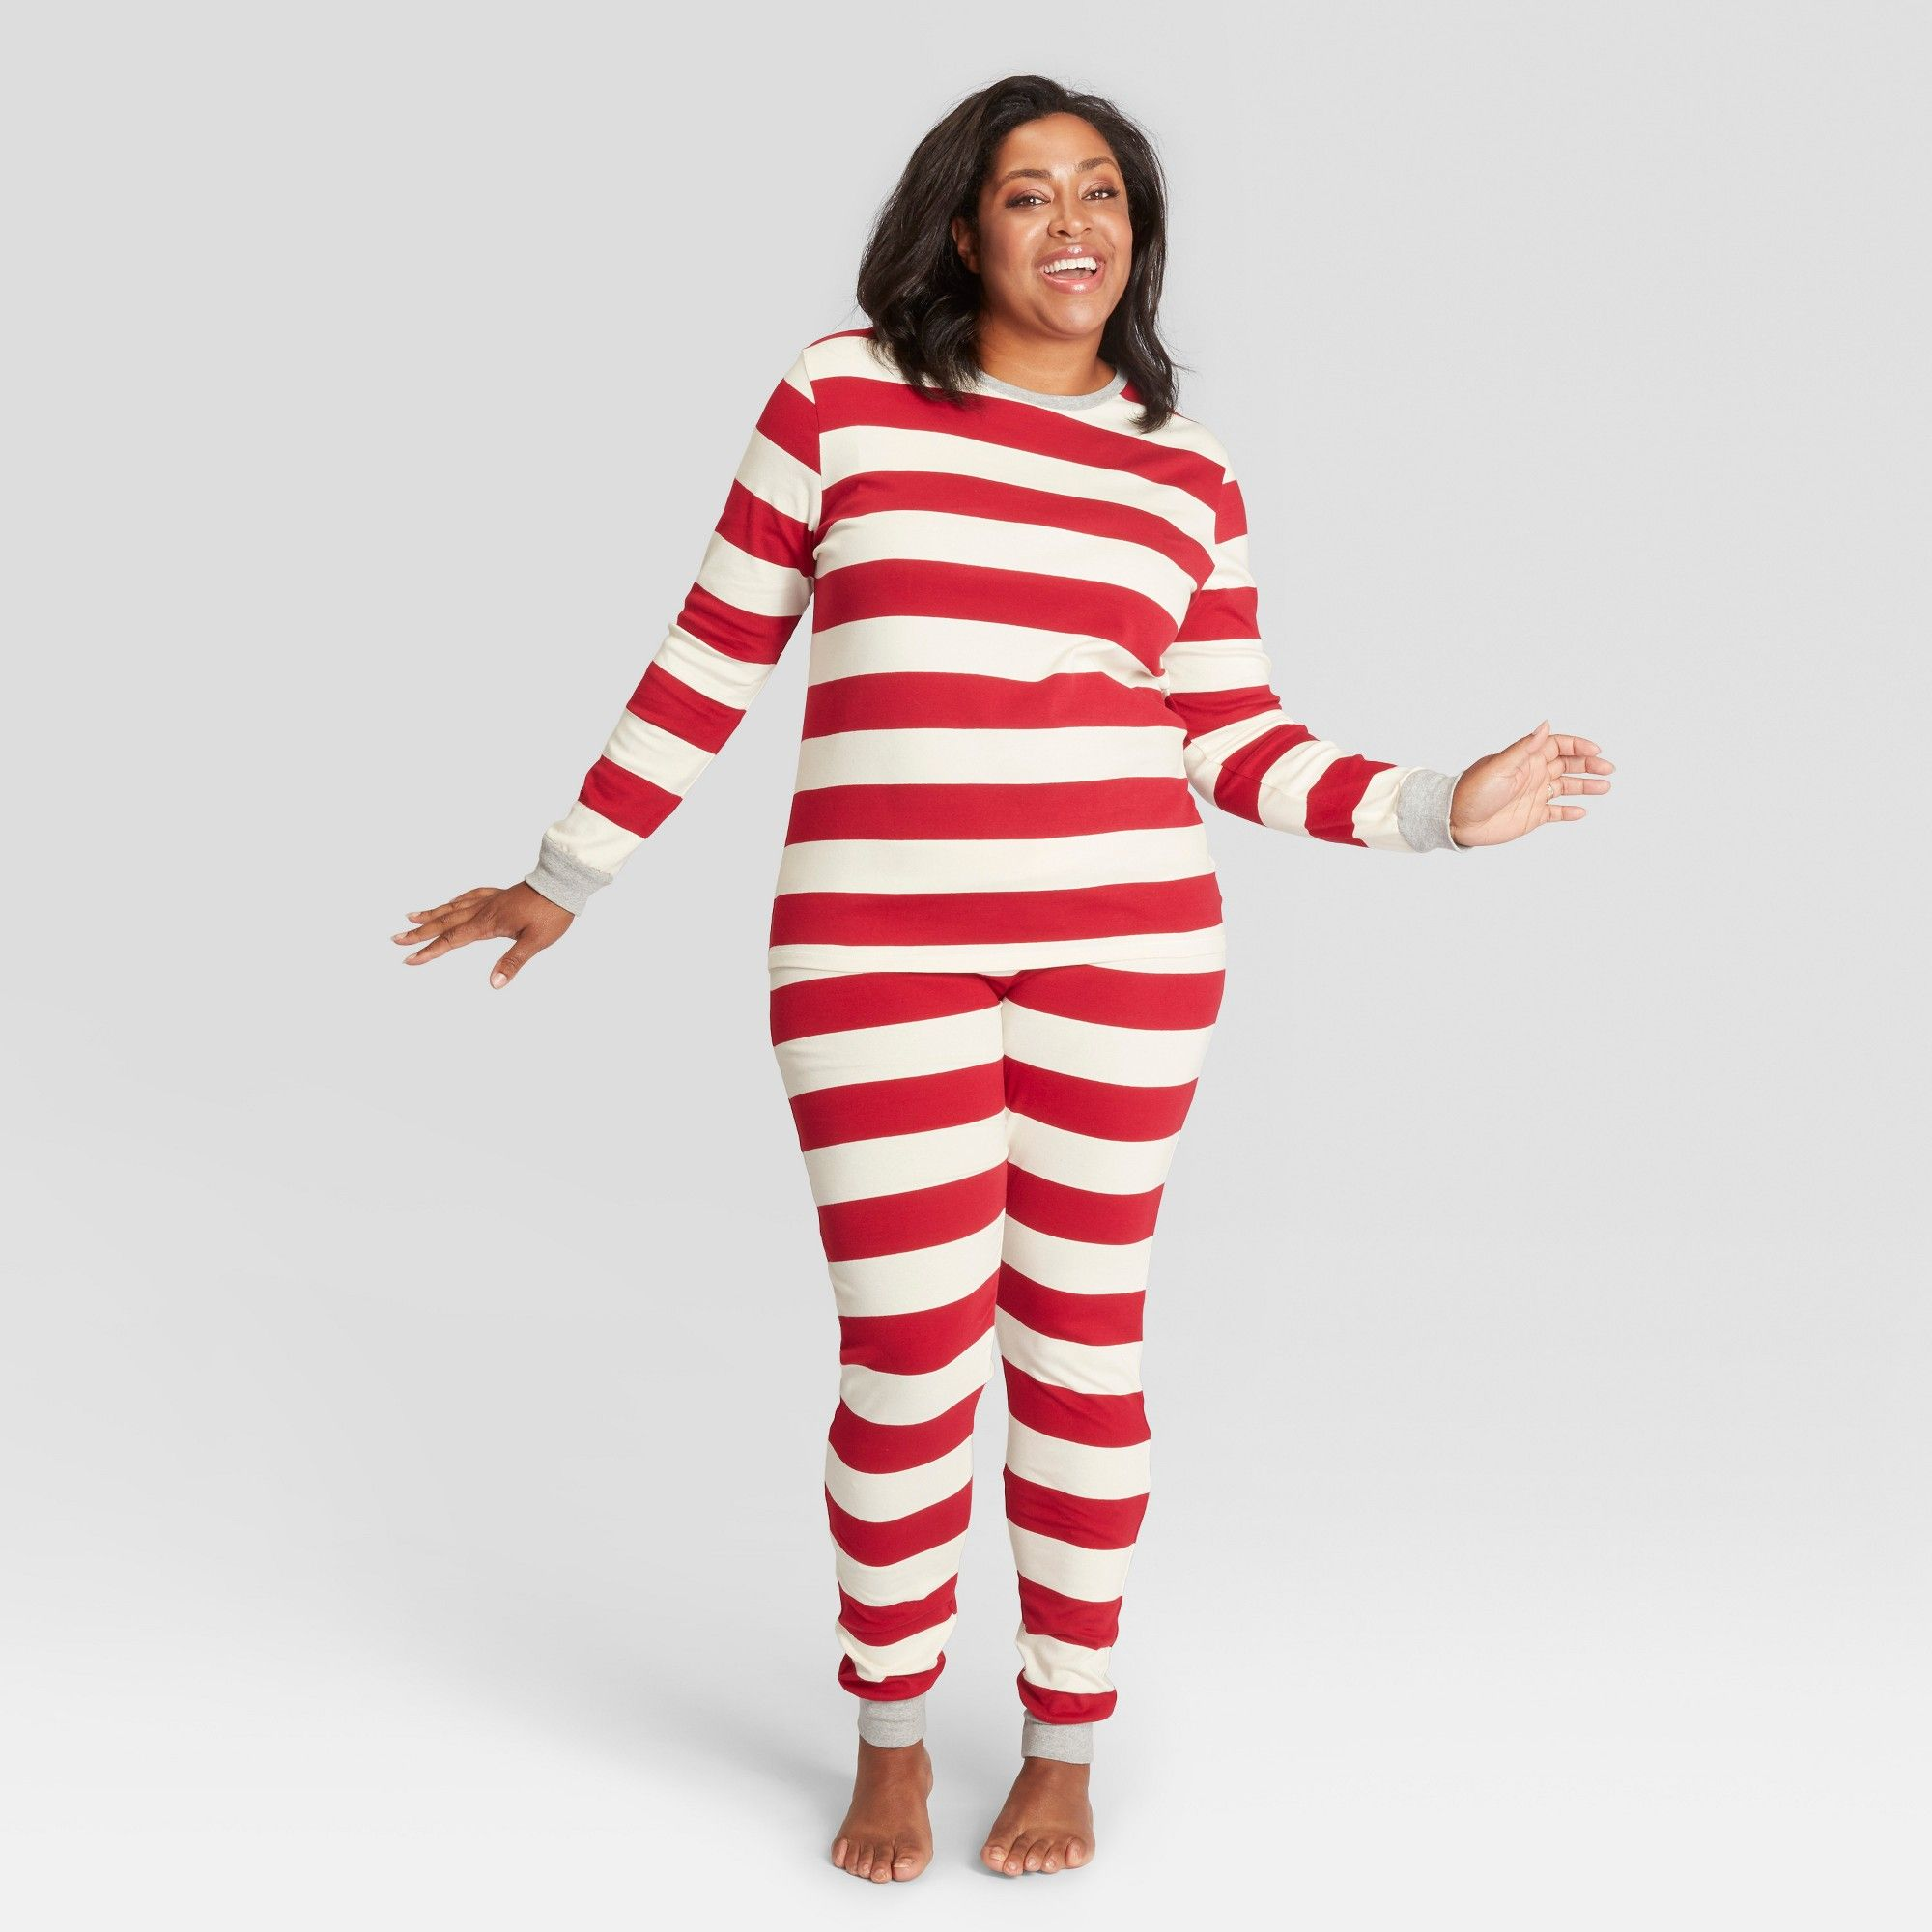 74279e1f2f Burt s Bees Baby Women s Striped Holiday Rugby Pajama Set - Red XS ...